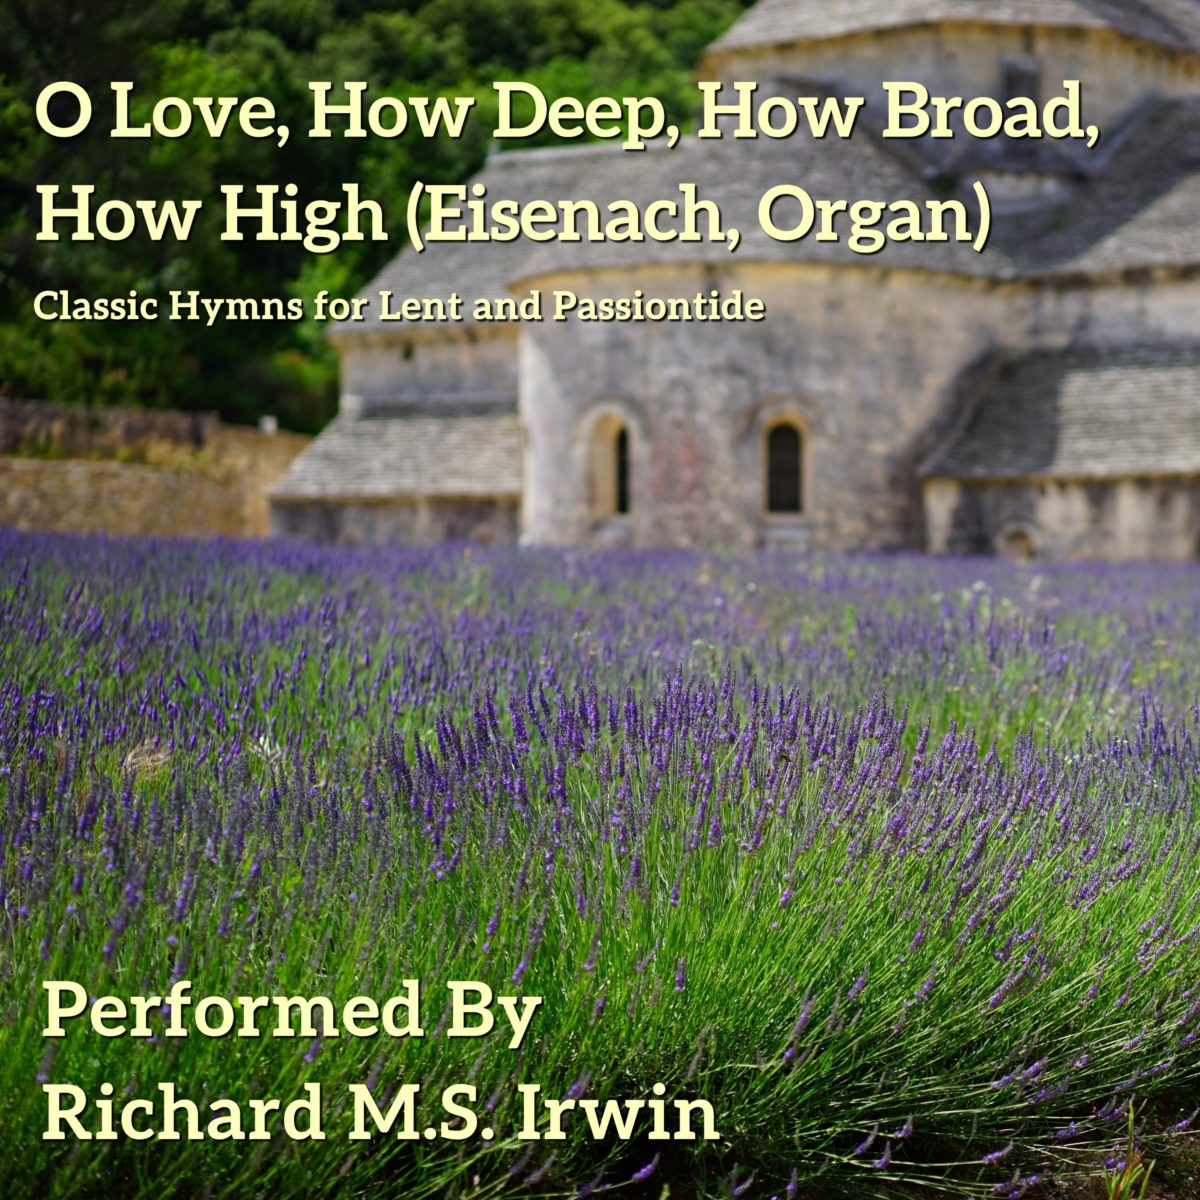 O Love How Deep (Eisenach – 6 Verses) – Organ